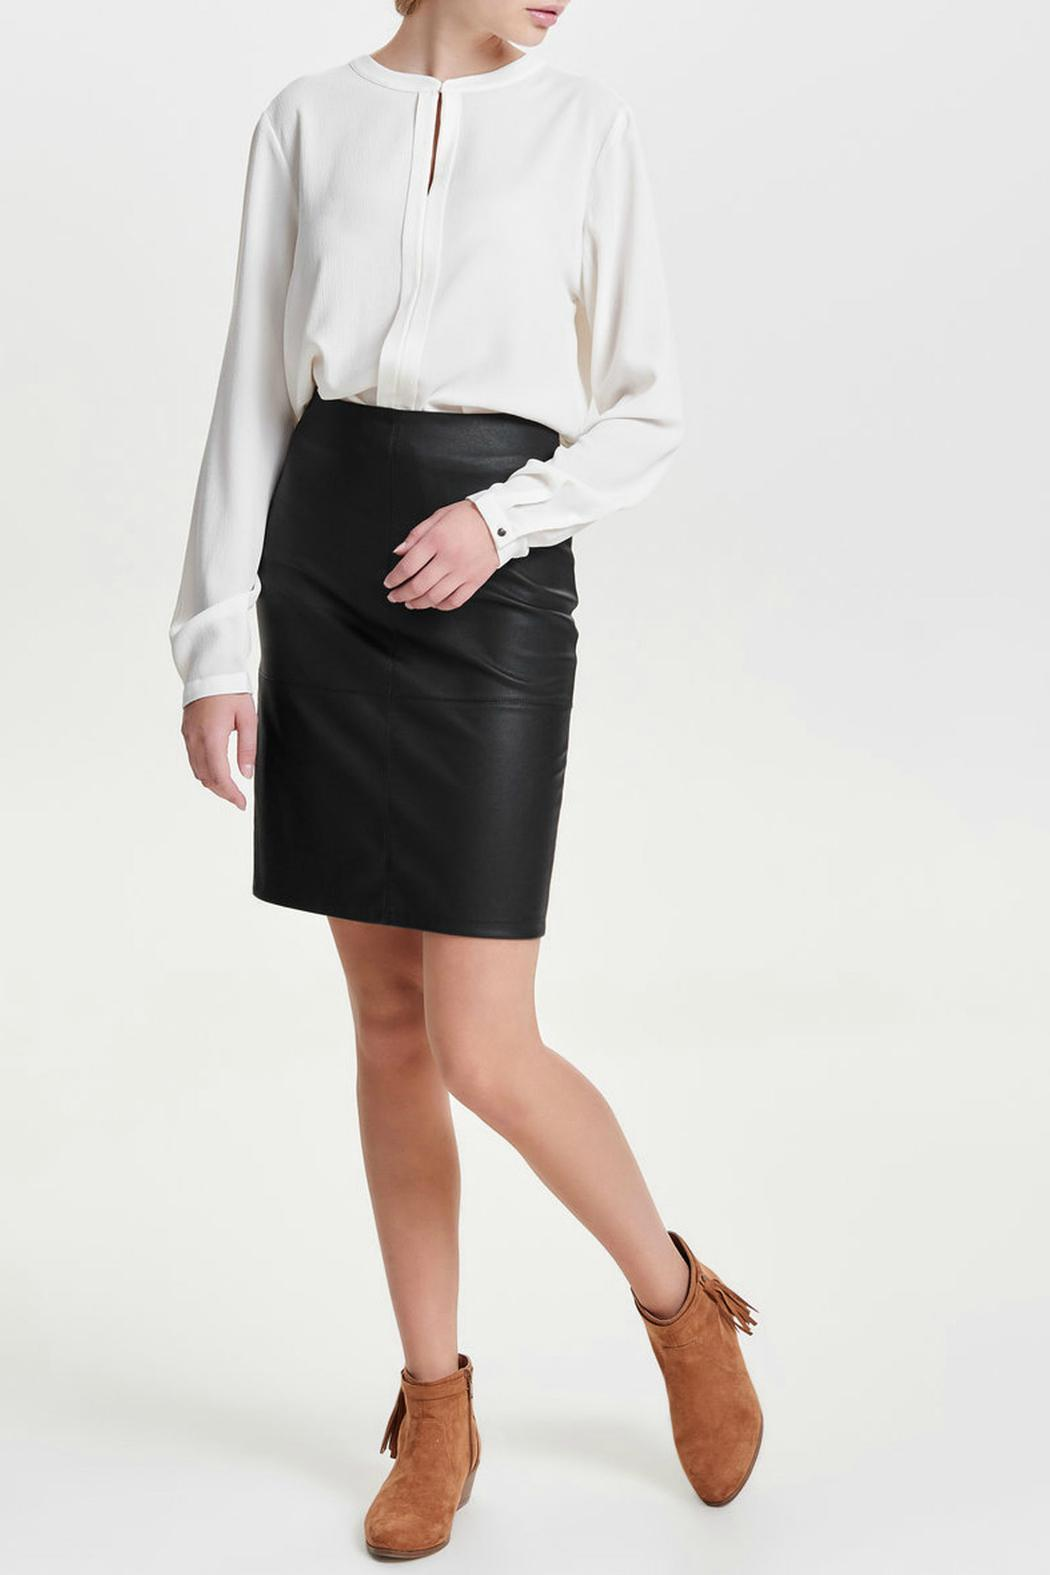 Outlet Clearance Outlet Hot Sale Faux Leather Skirt - Black Only From China Free Shipping Low Price Discount Enjoy Affordable 7vjIR7mZhL